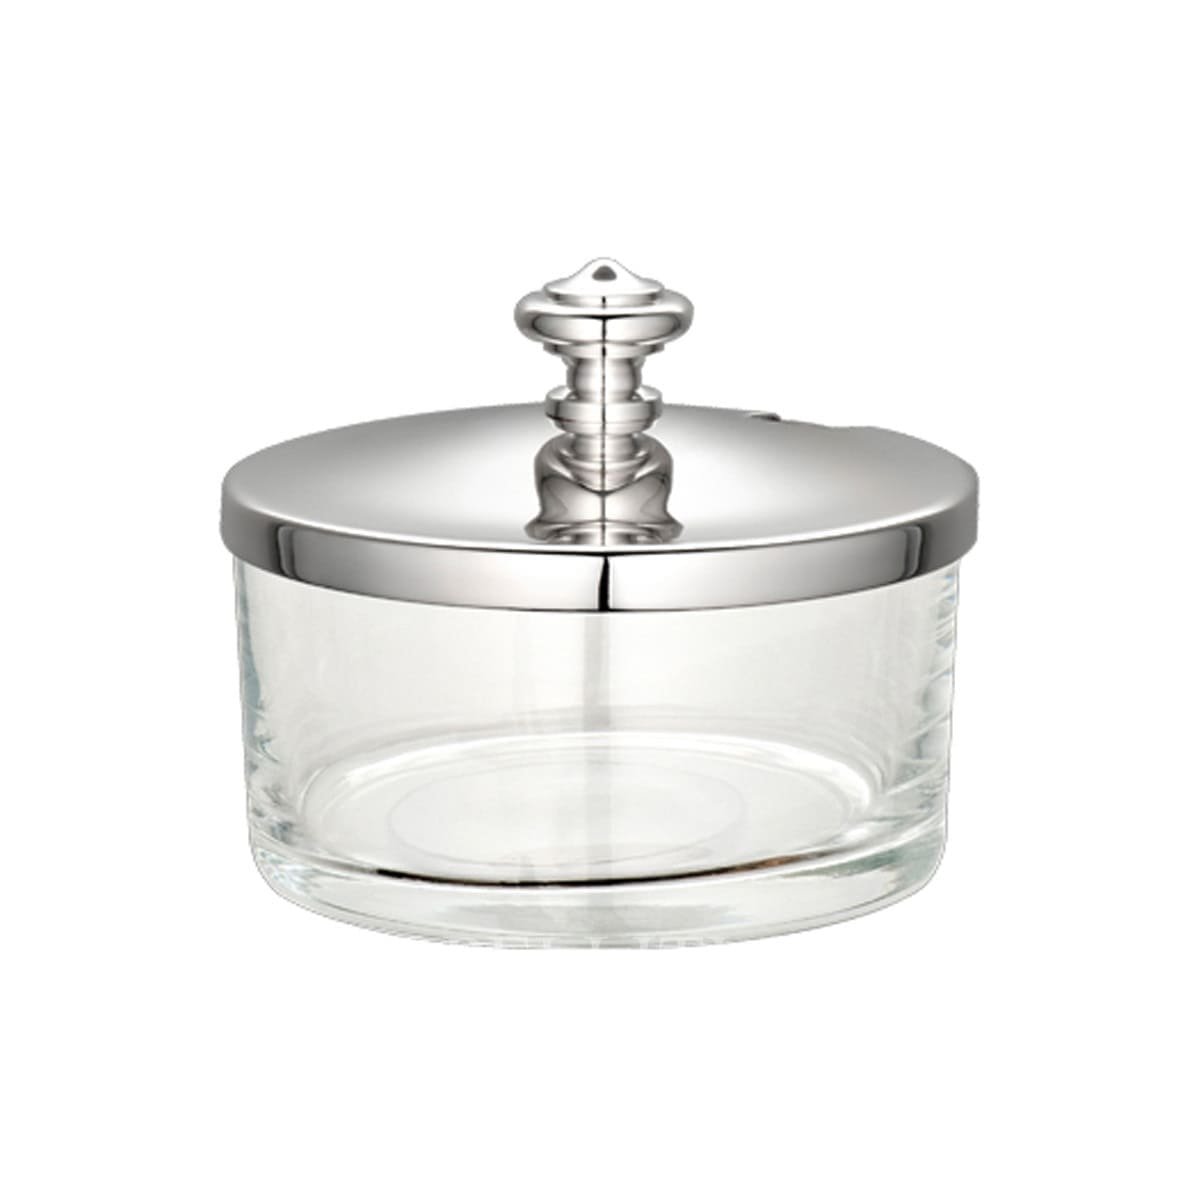 christofle silver plated albi cheese dish